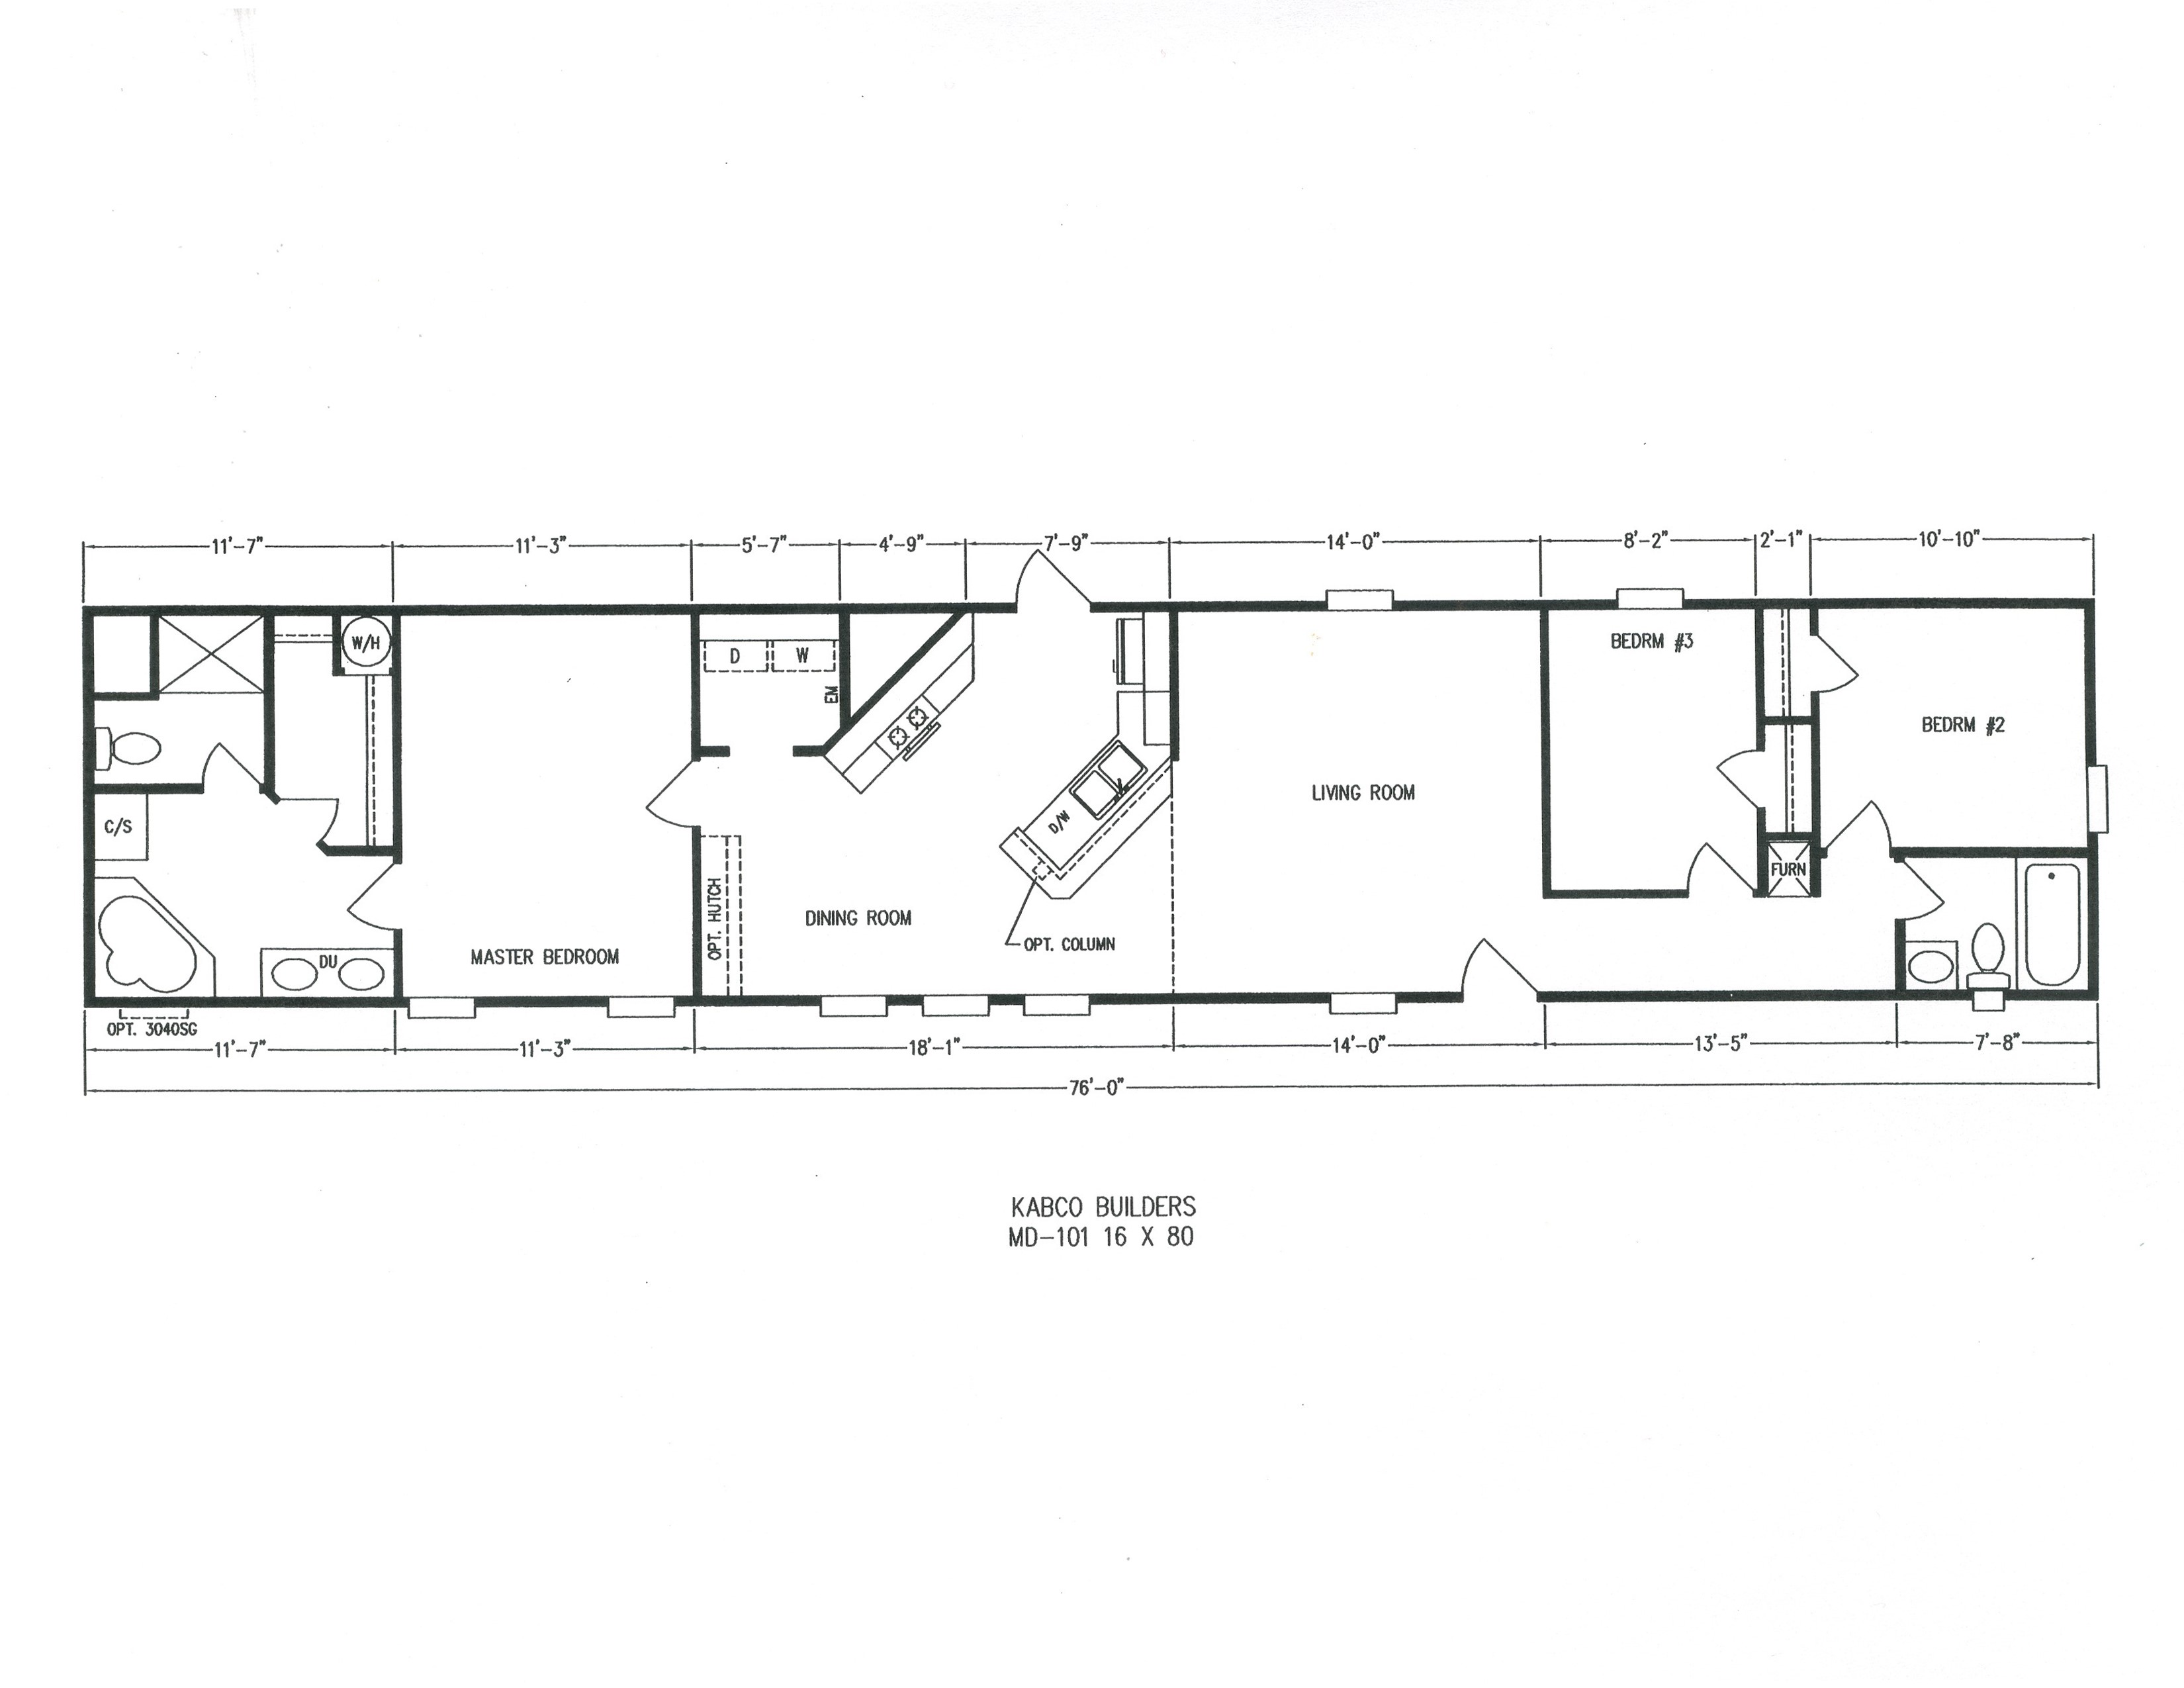 Floor Plans | Kabco Builders on